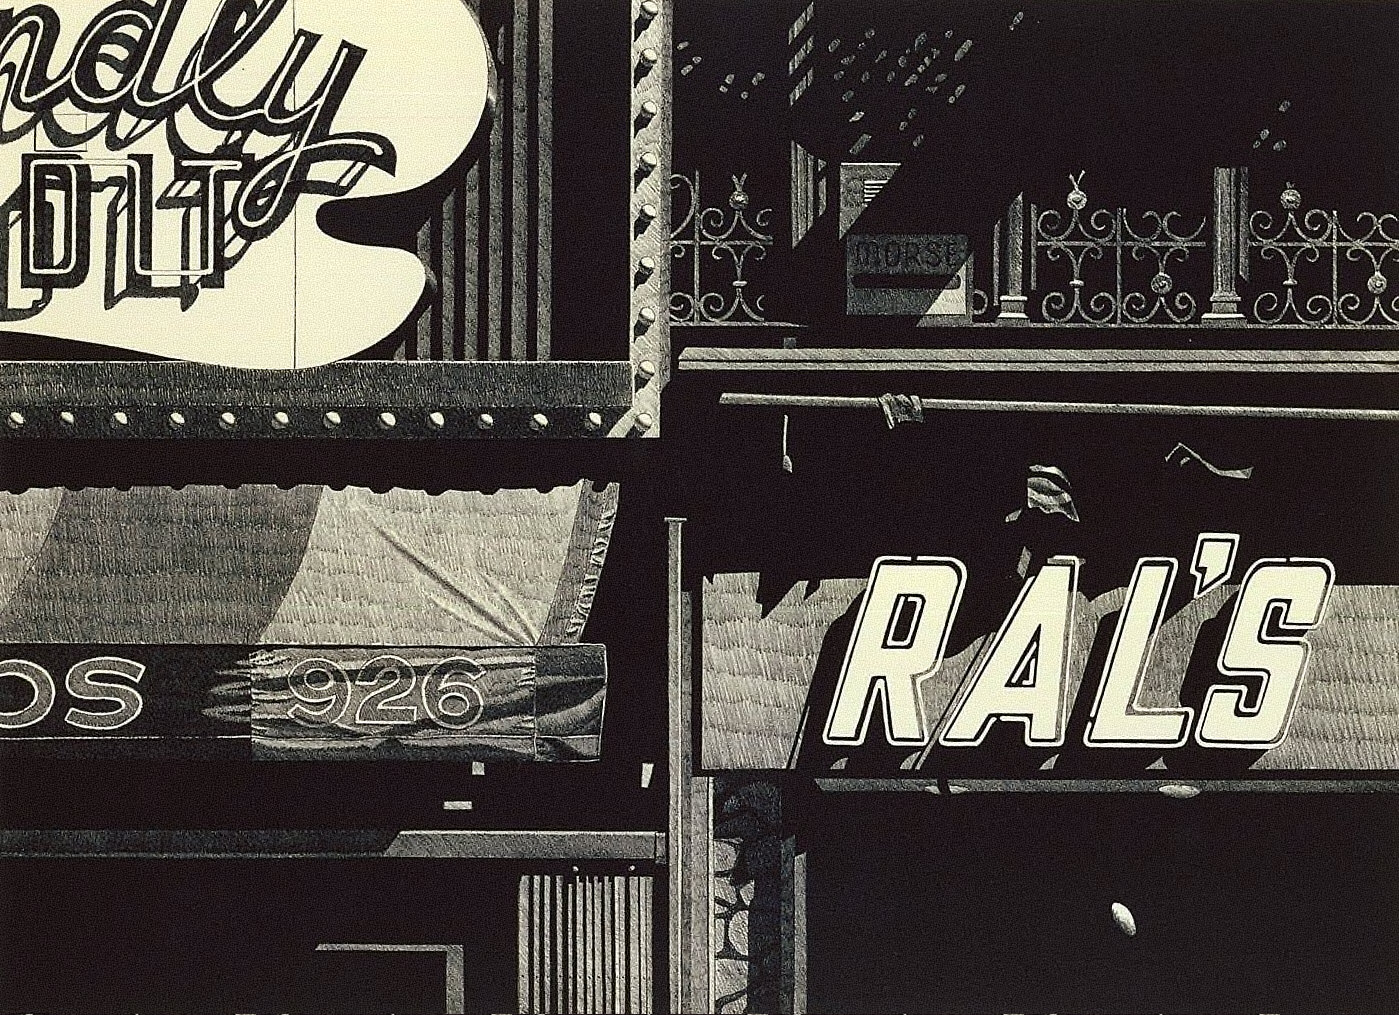 Ral's